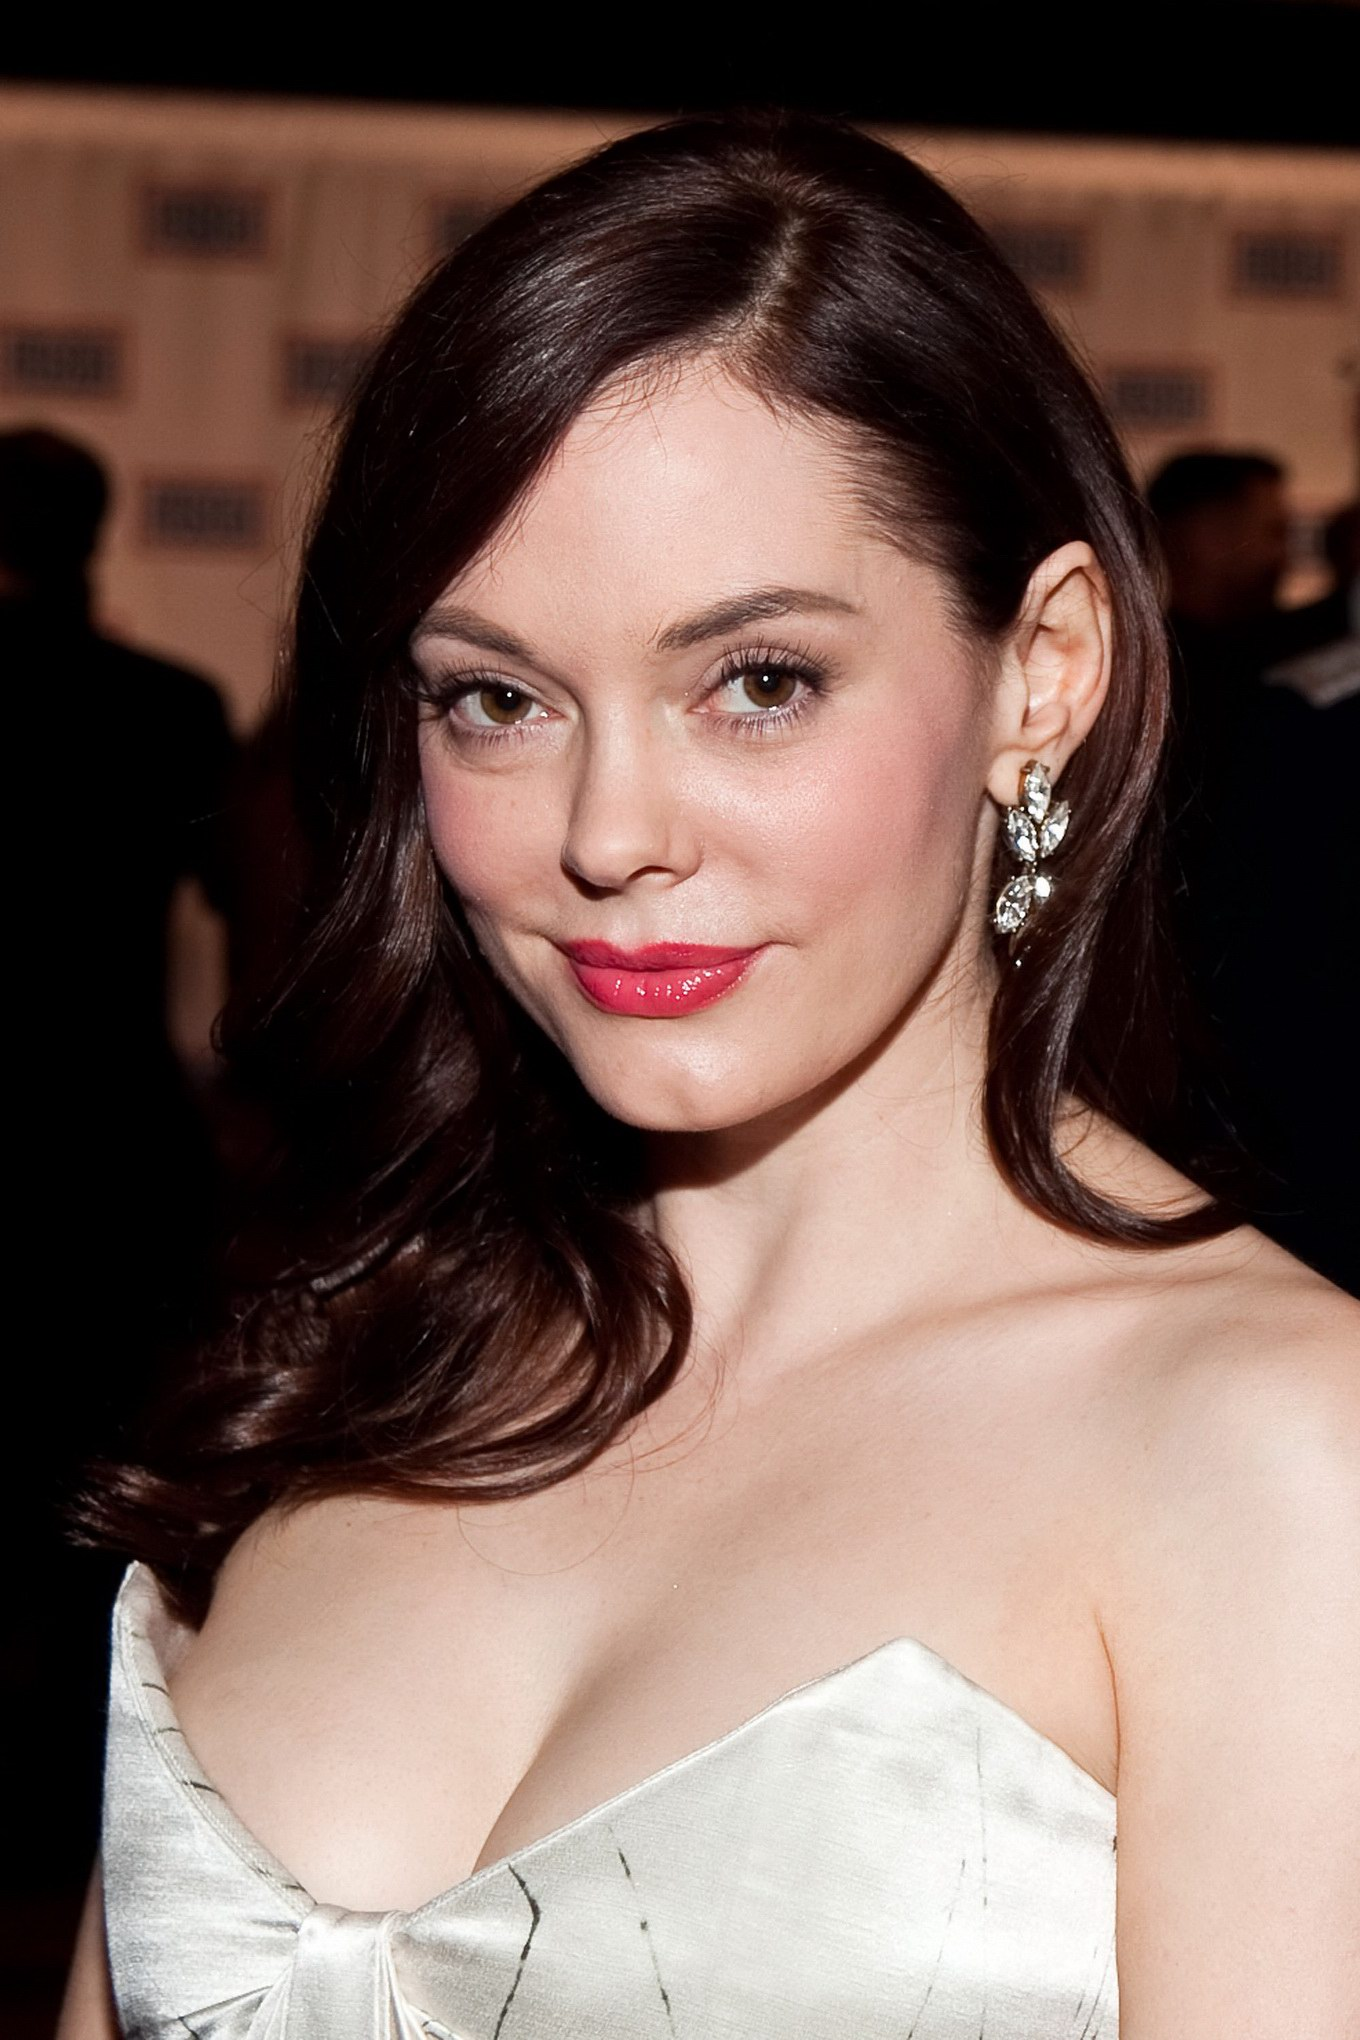 Rose Mcgowan Showing Massive Cleavage In Strapless Dress At Uso Gala